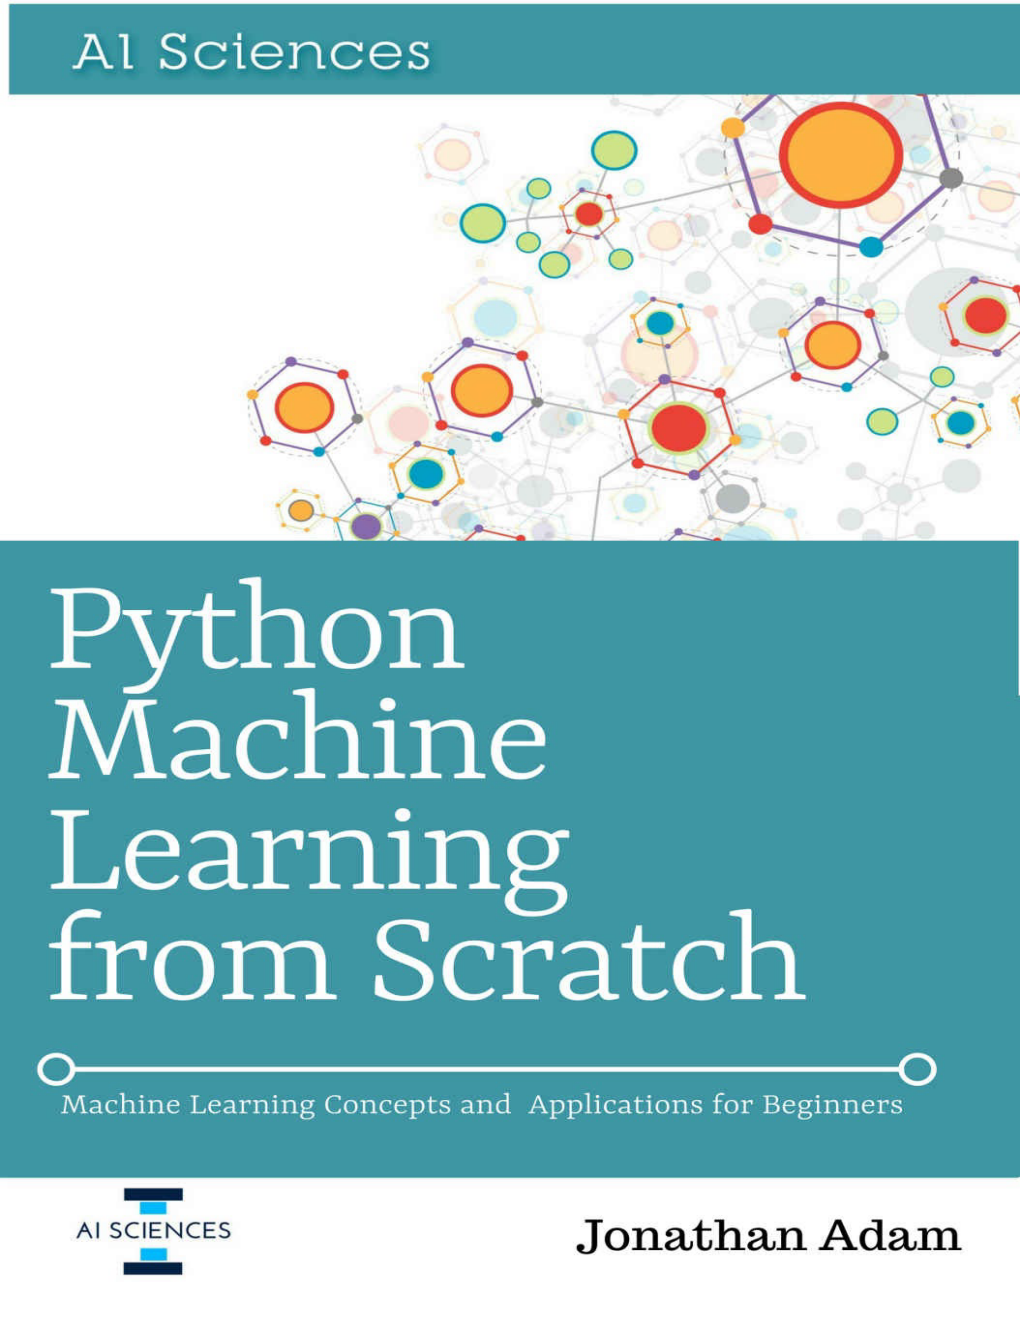 Python-Machine-Learning-from-Scratch_01.png